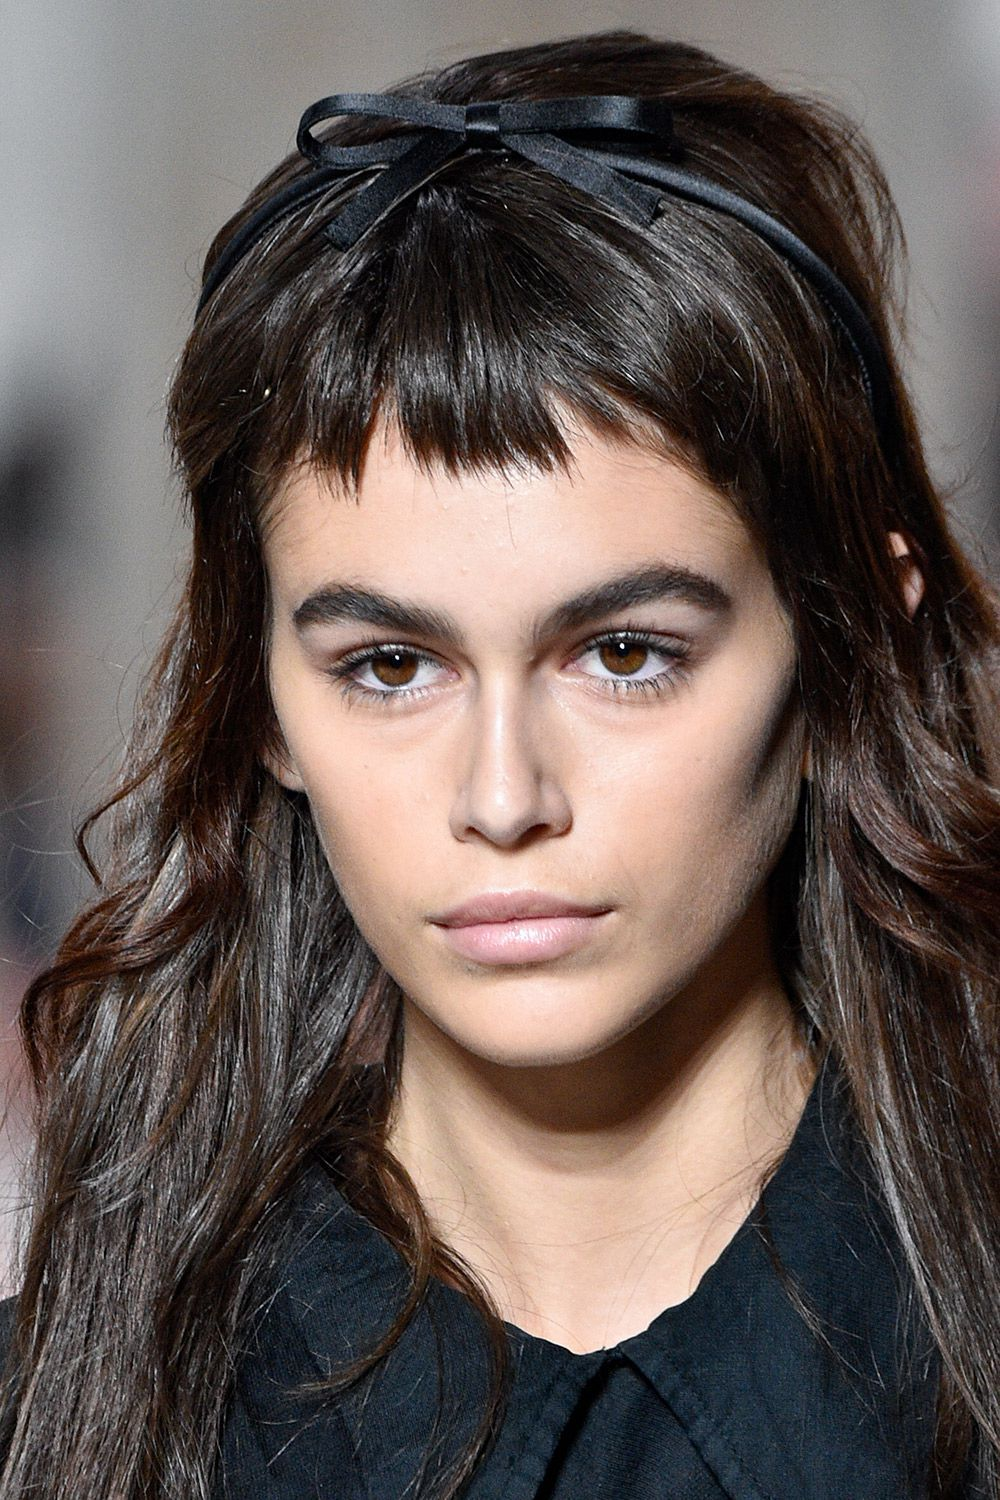 Spring Summer 2020 Hair Trends.6 Spring Summer 2020 Hair Trends To Try Now Summer